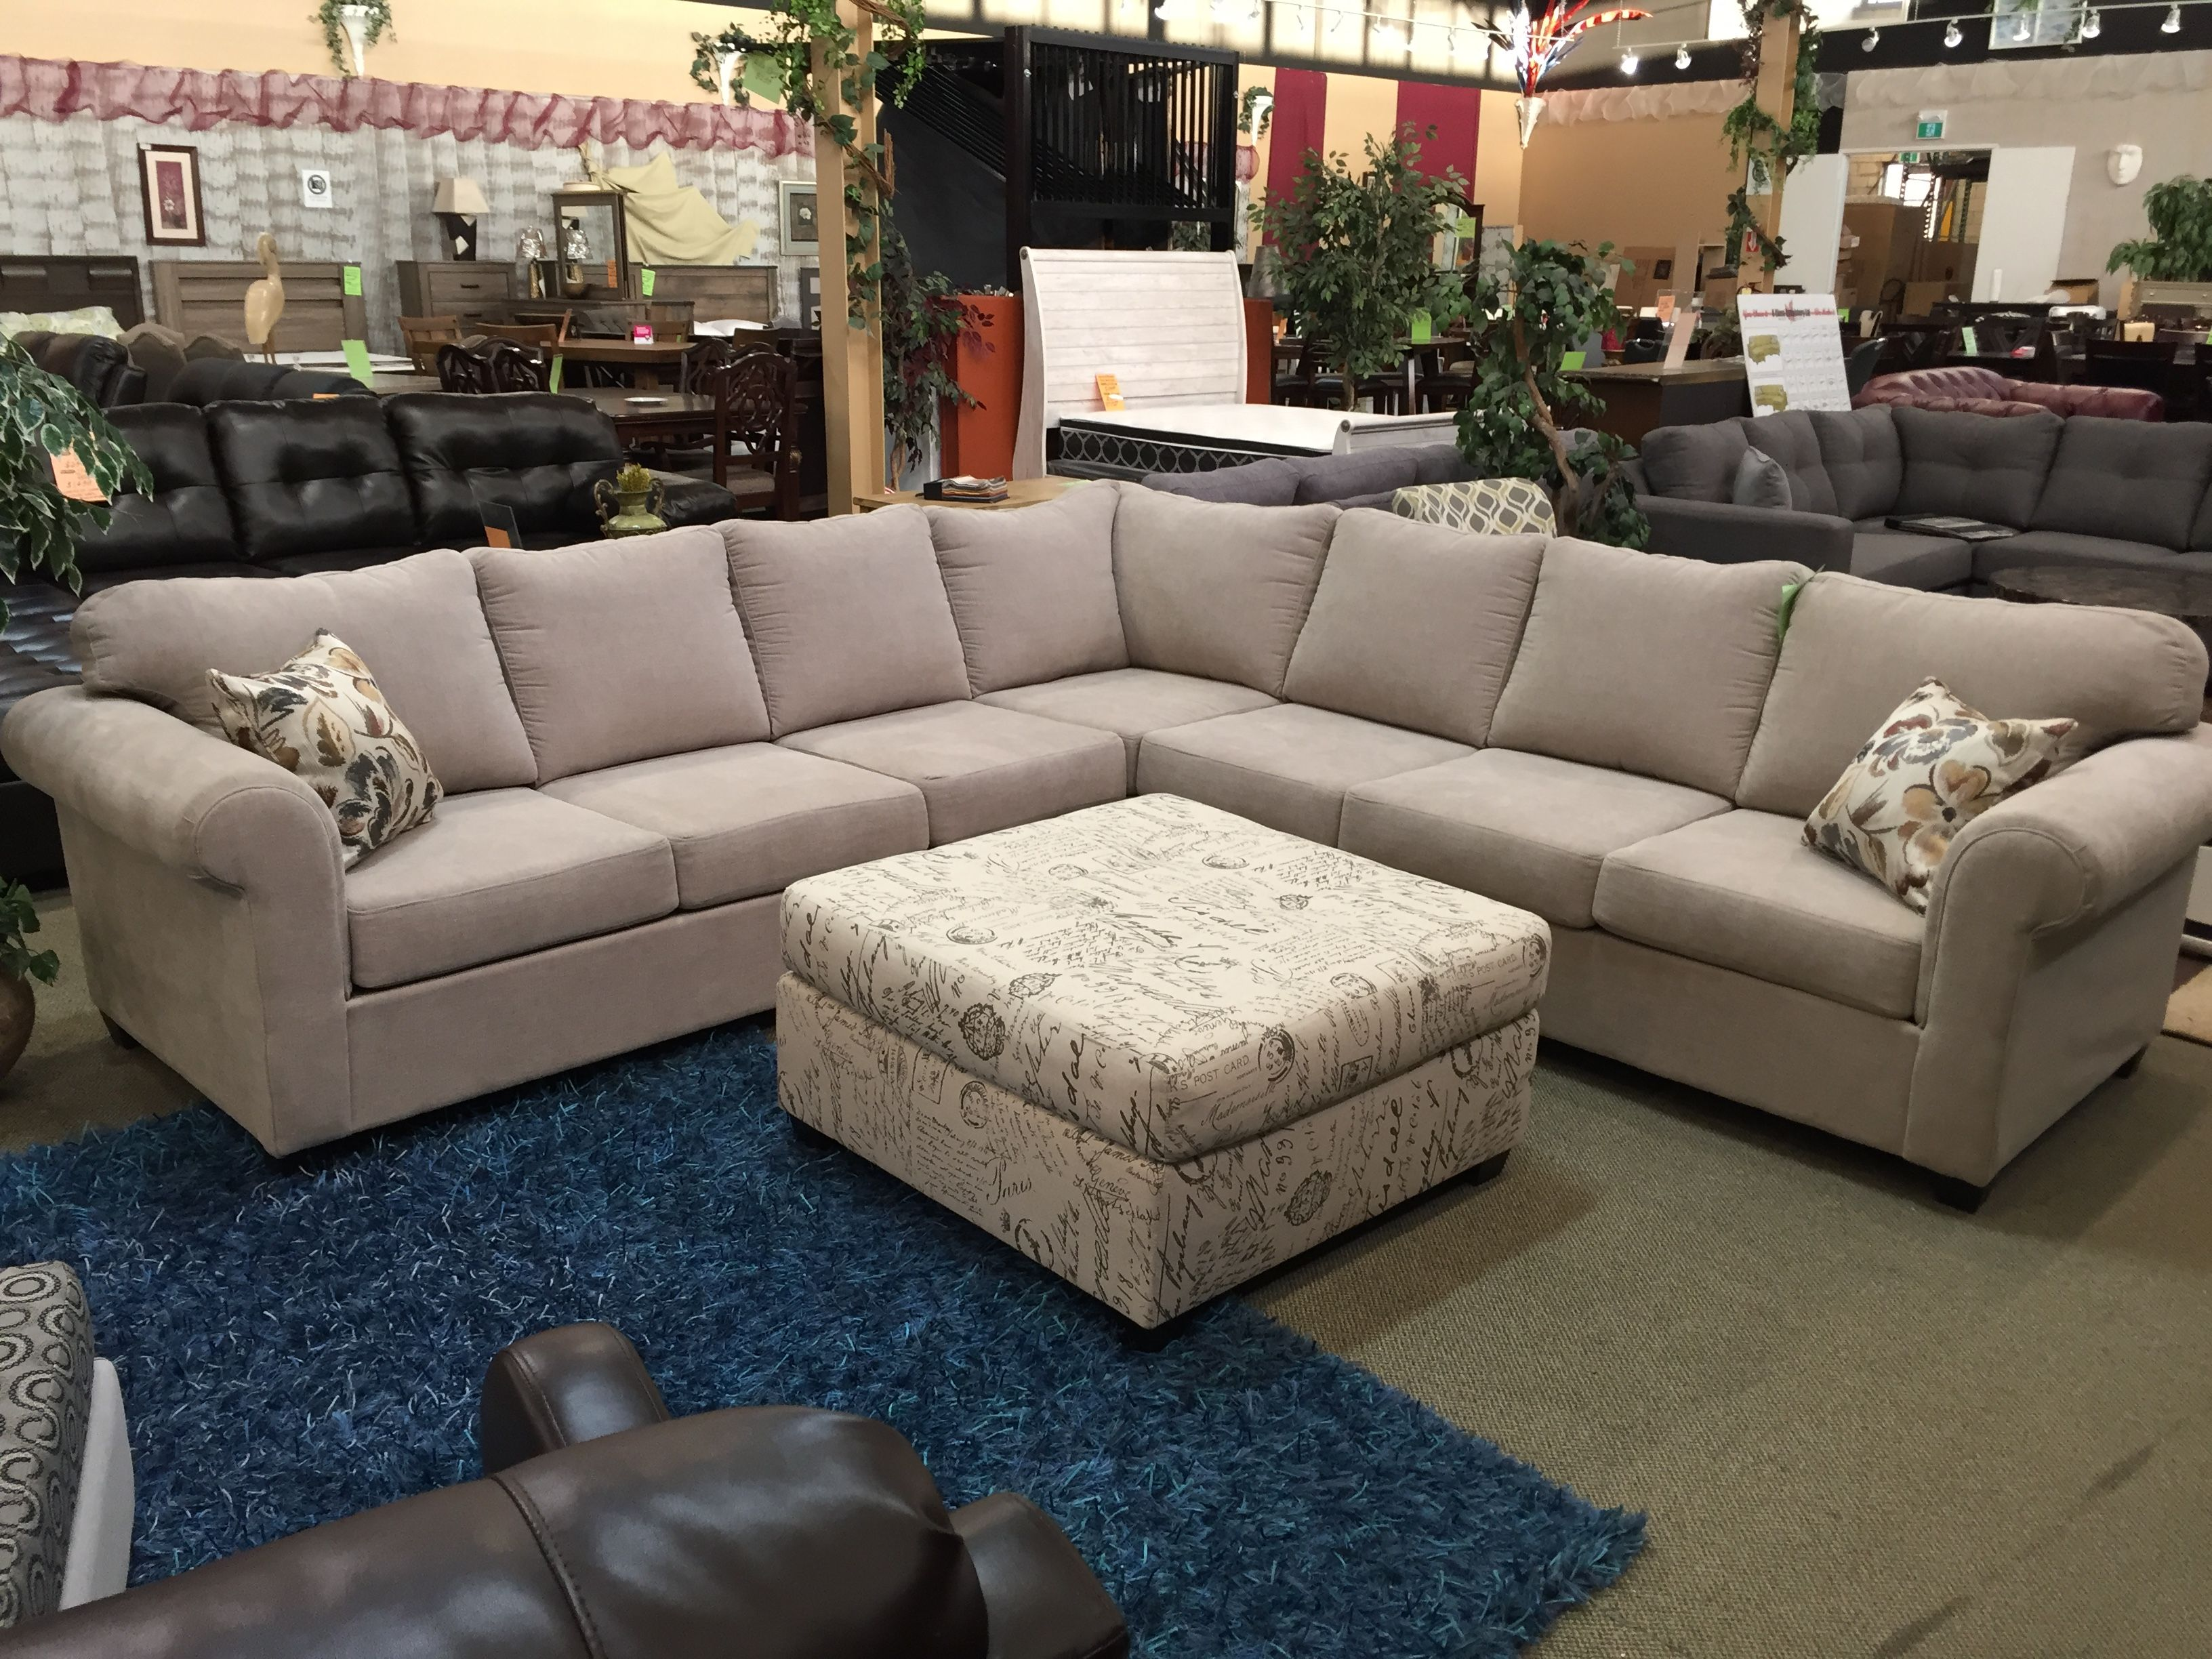 L Shape Sectional 114 By 114l Available In Hundreds Of Different Fabrics Colours And Materials Superior Des Sectional Sectional Couch Furniture Manufacturers